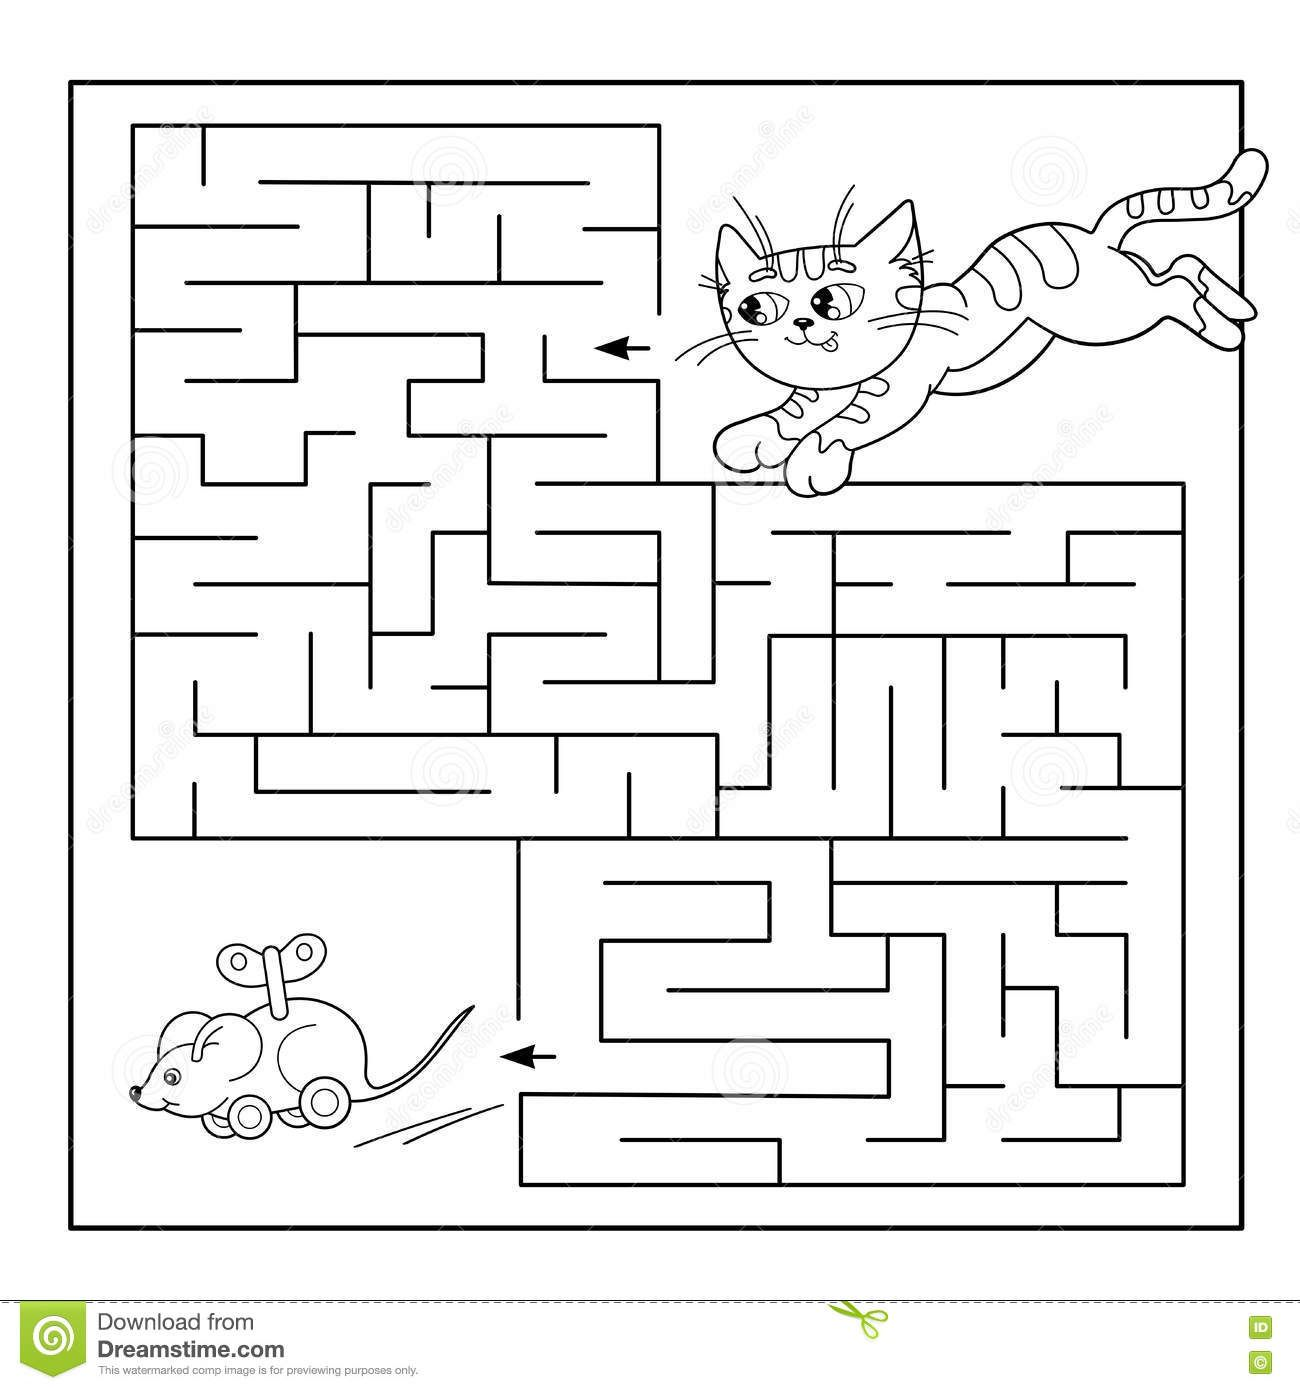 Education Maze Or Labyrinth Game For Preschool Children Puzzle Coloring Page Outline Of Cat